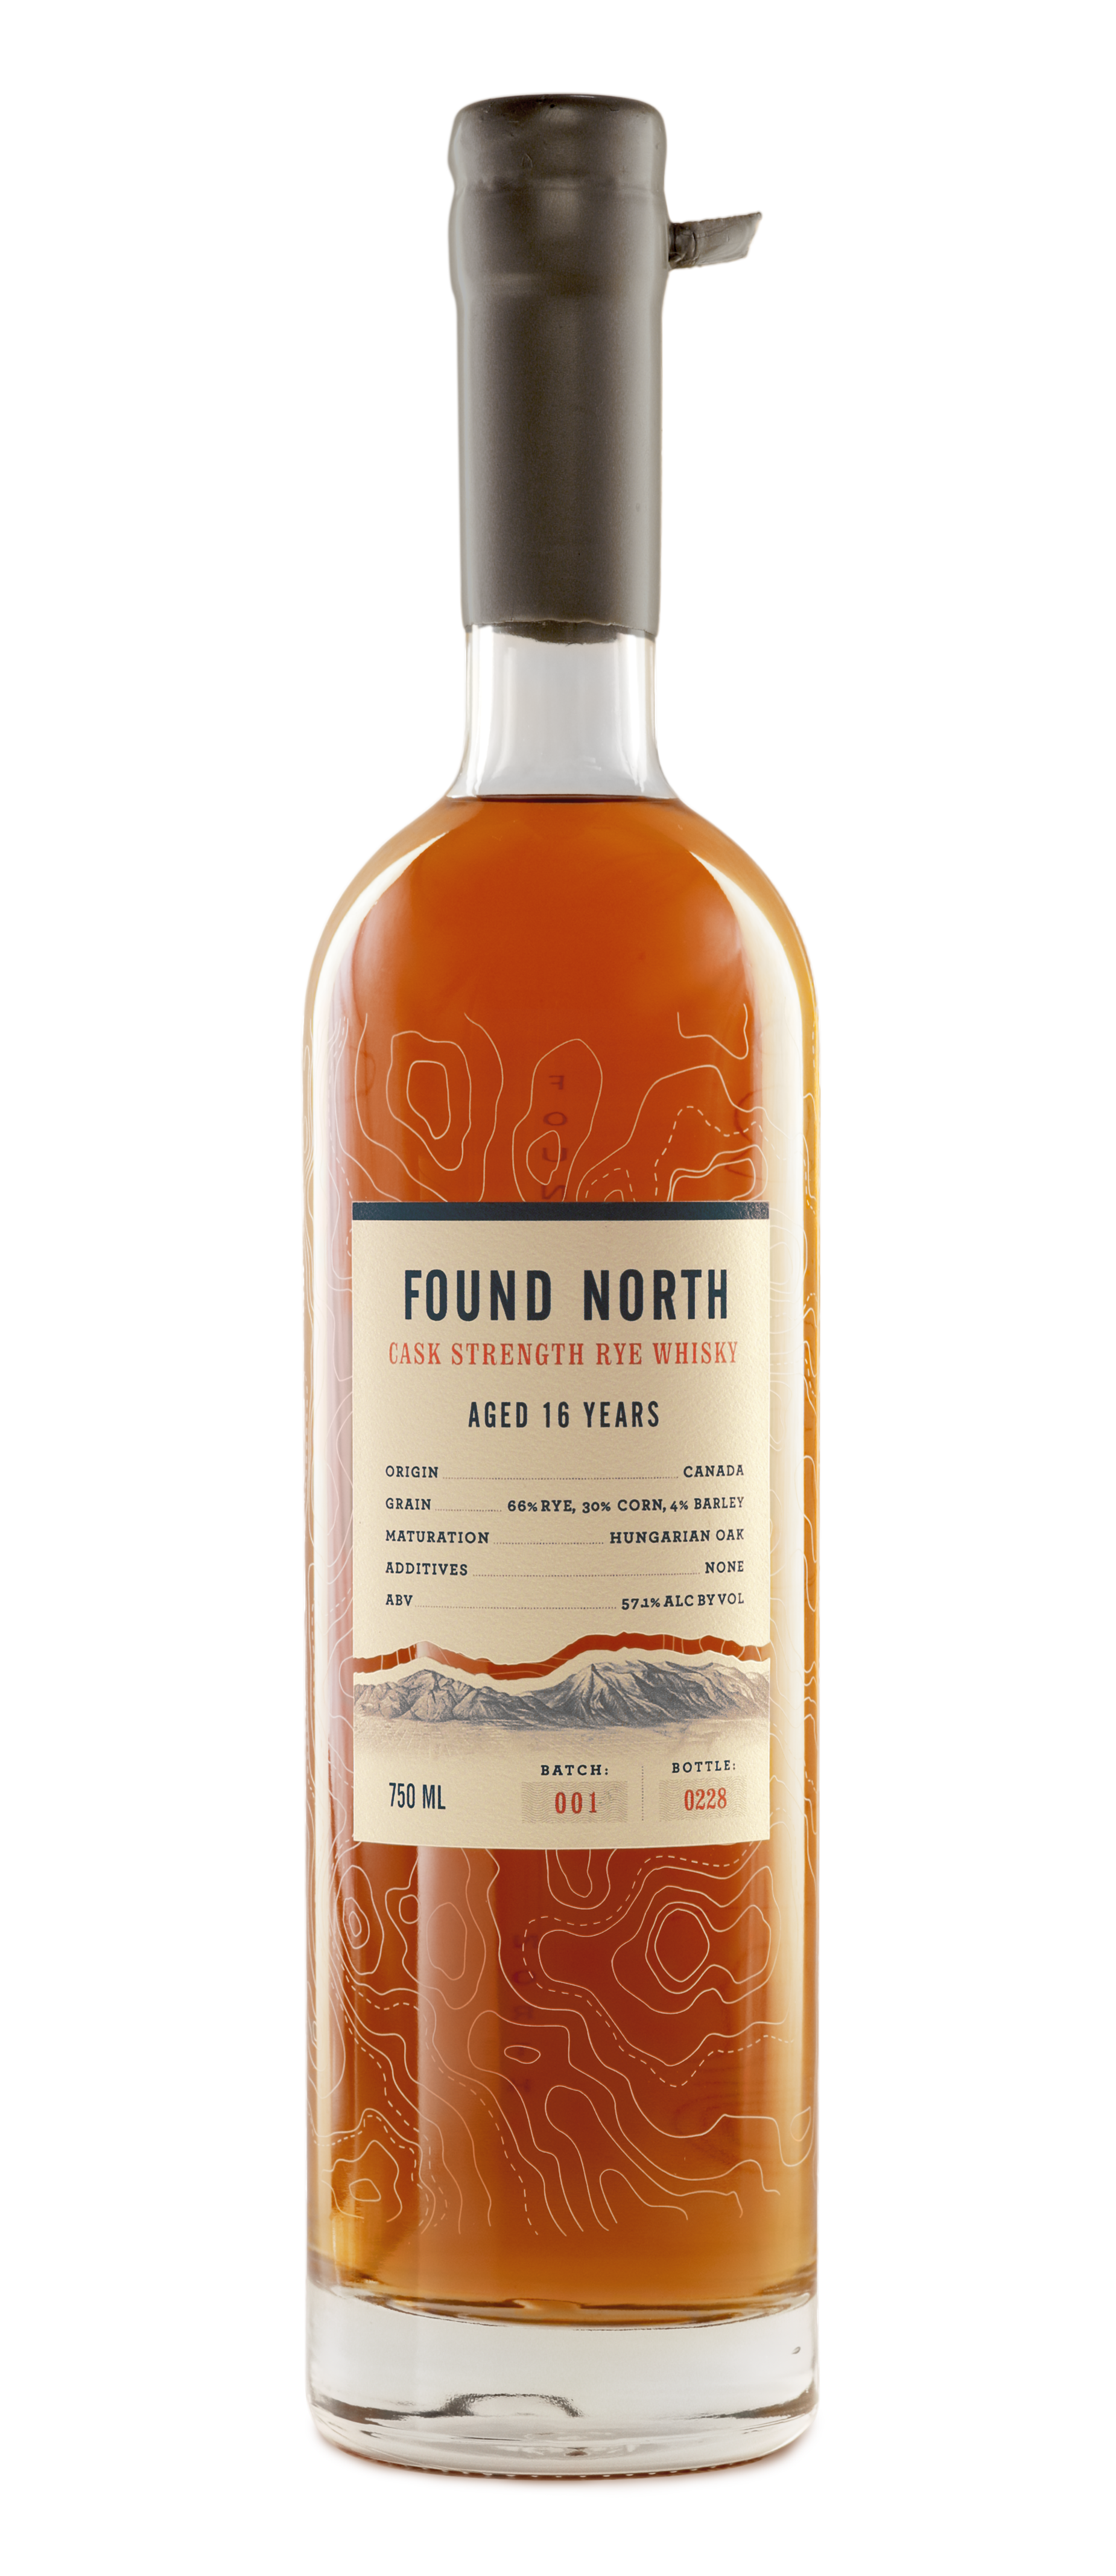 Image of Batch 001 Bottle of Found North